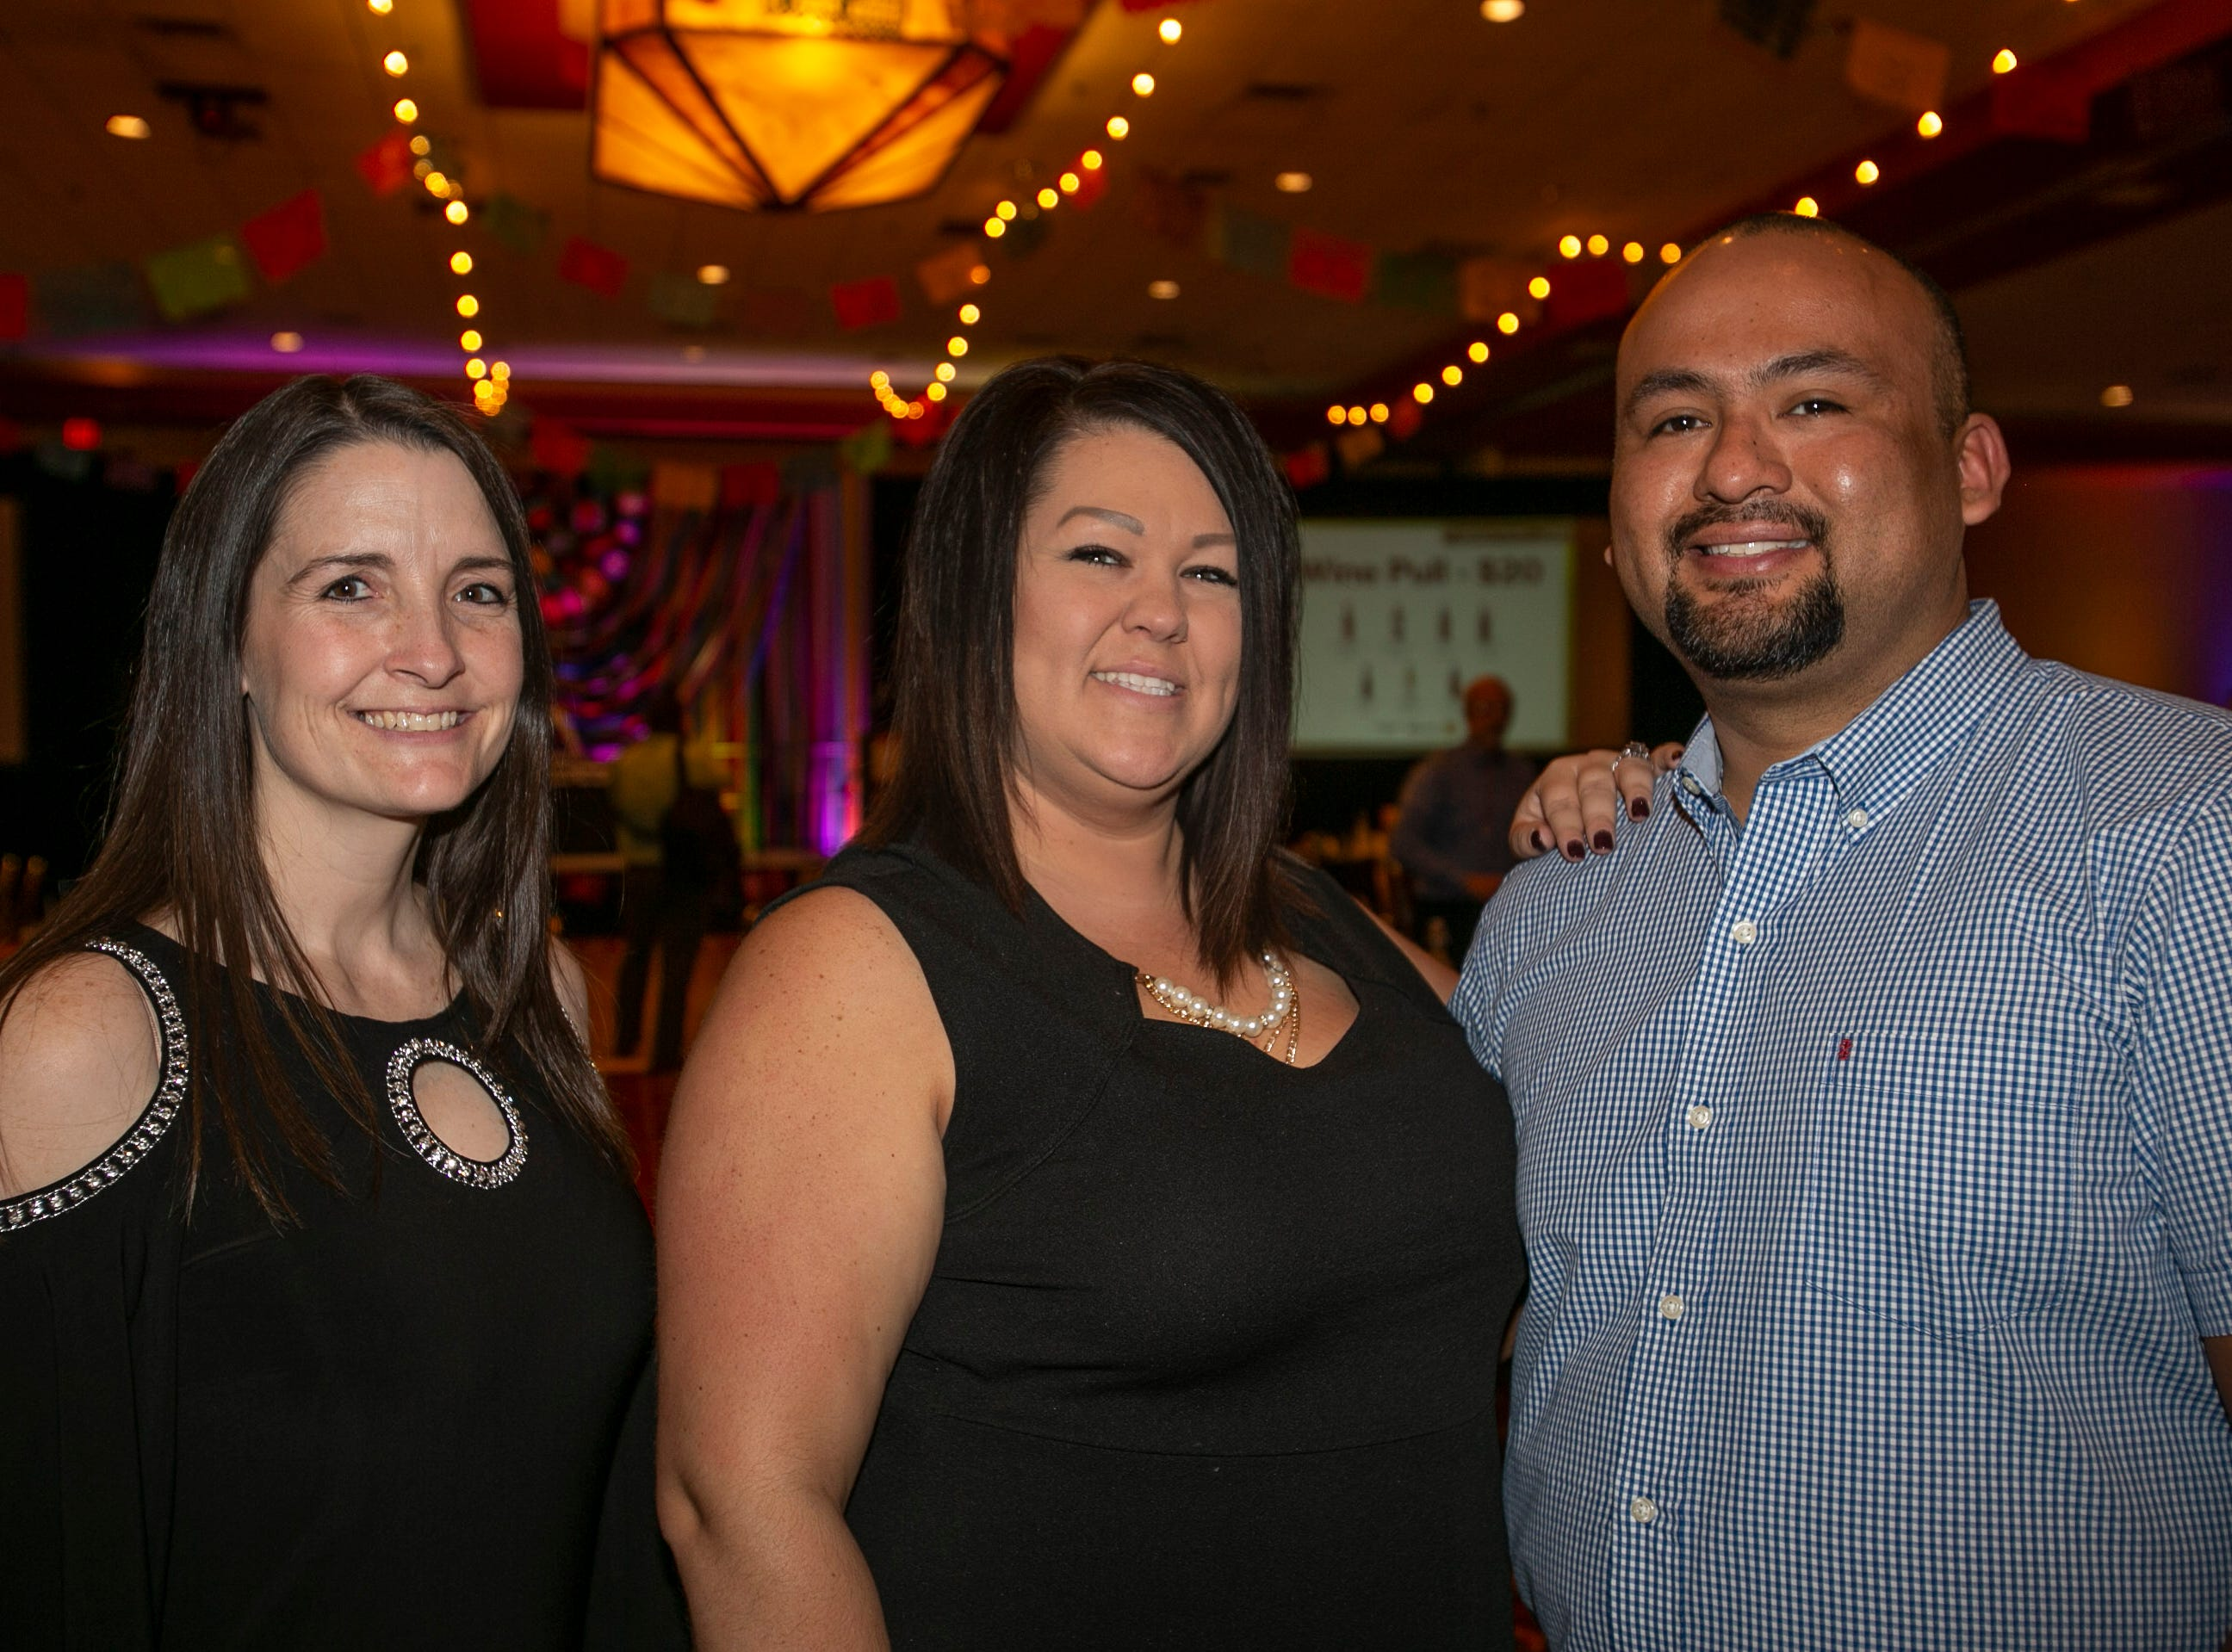 Terri Copeland, Tiffany Rogers, and Sonny Alegre